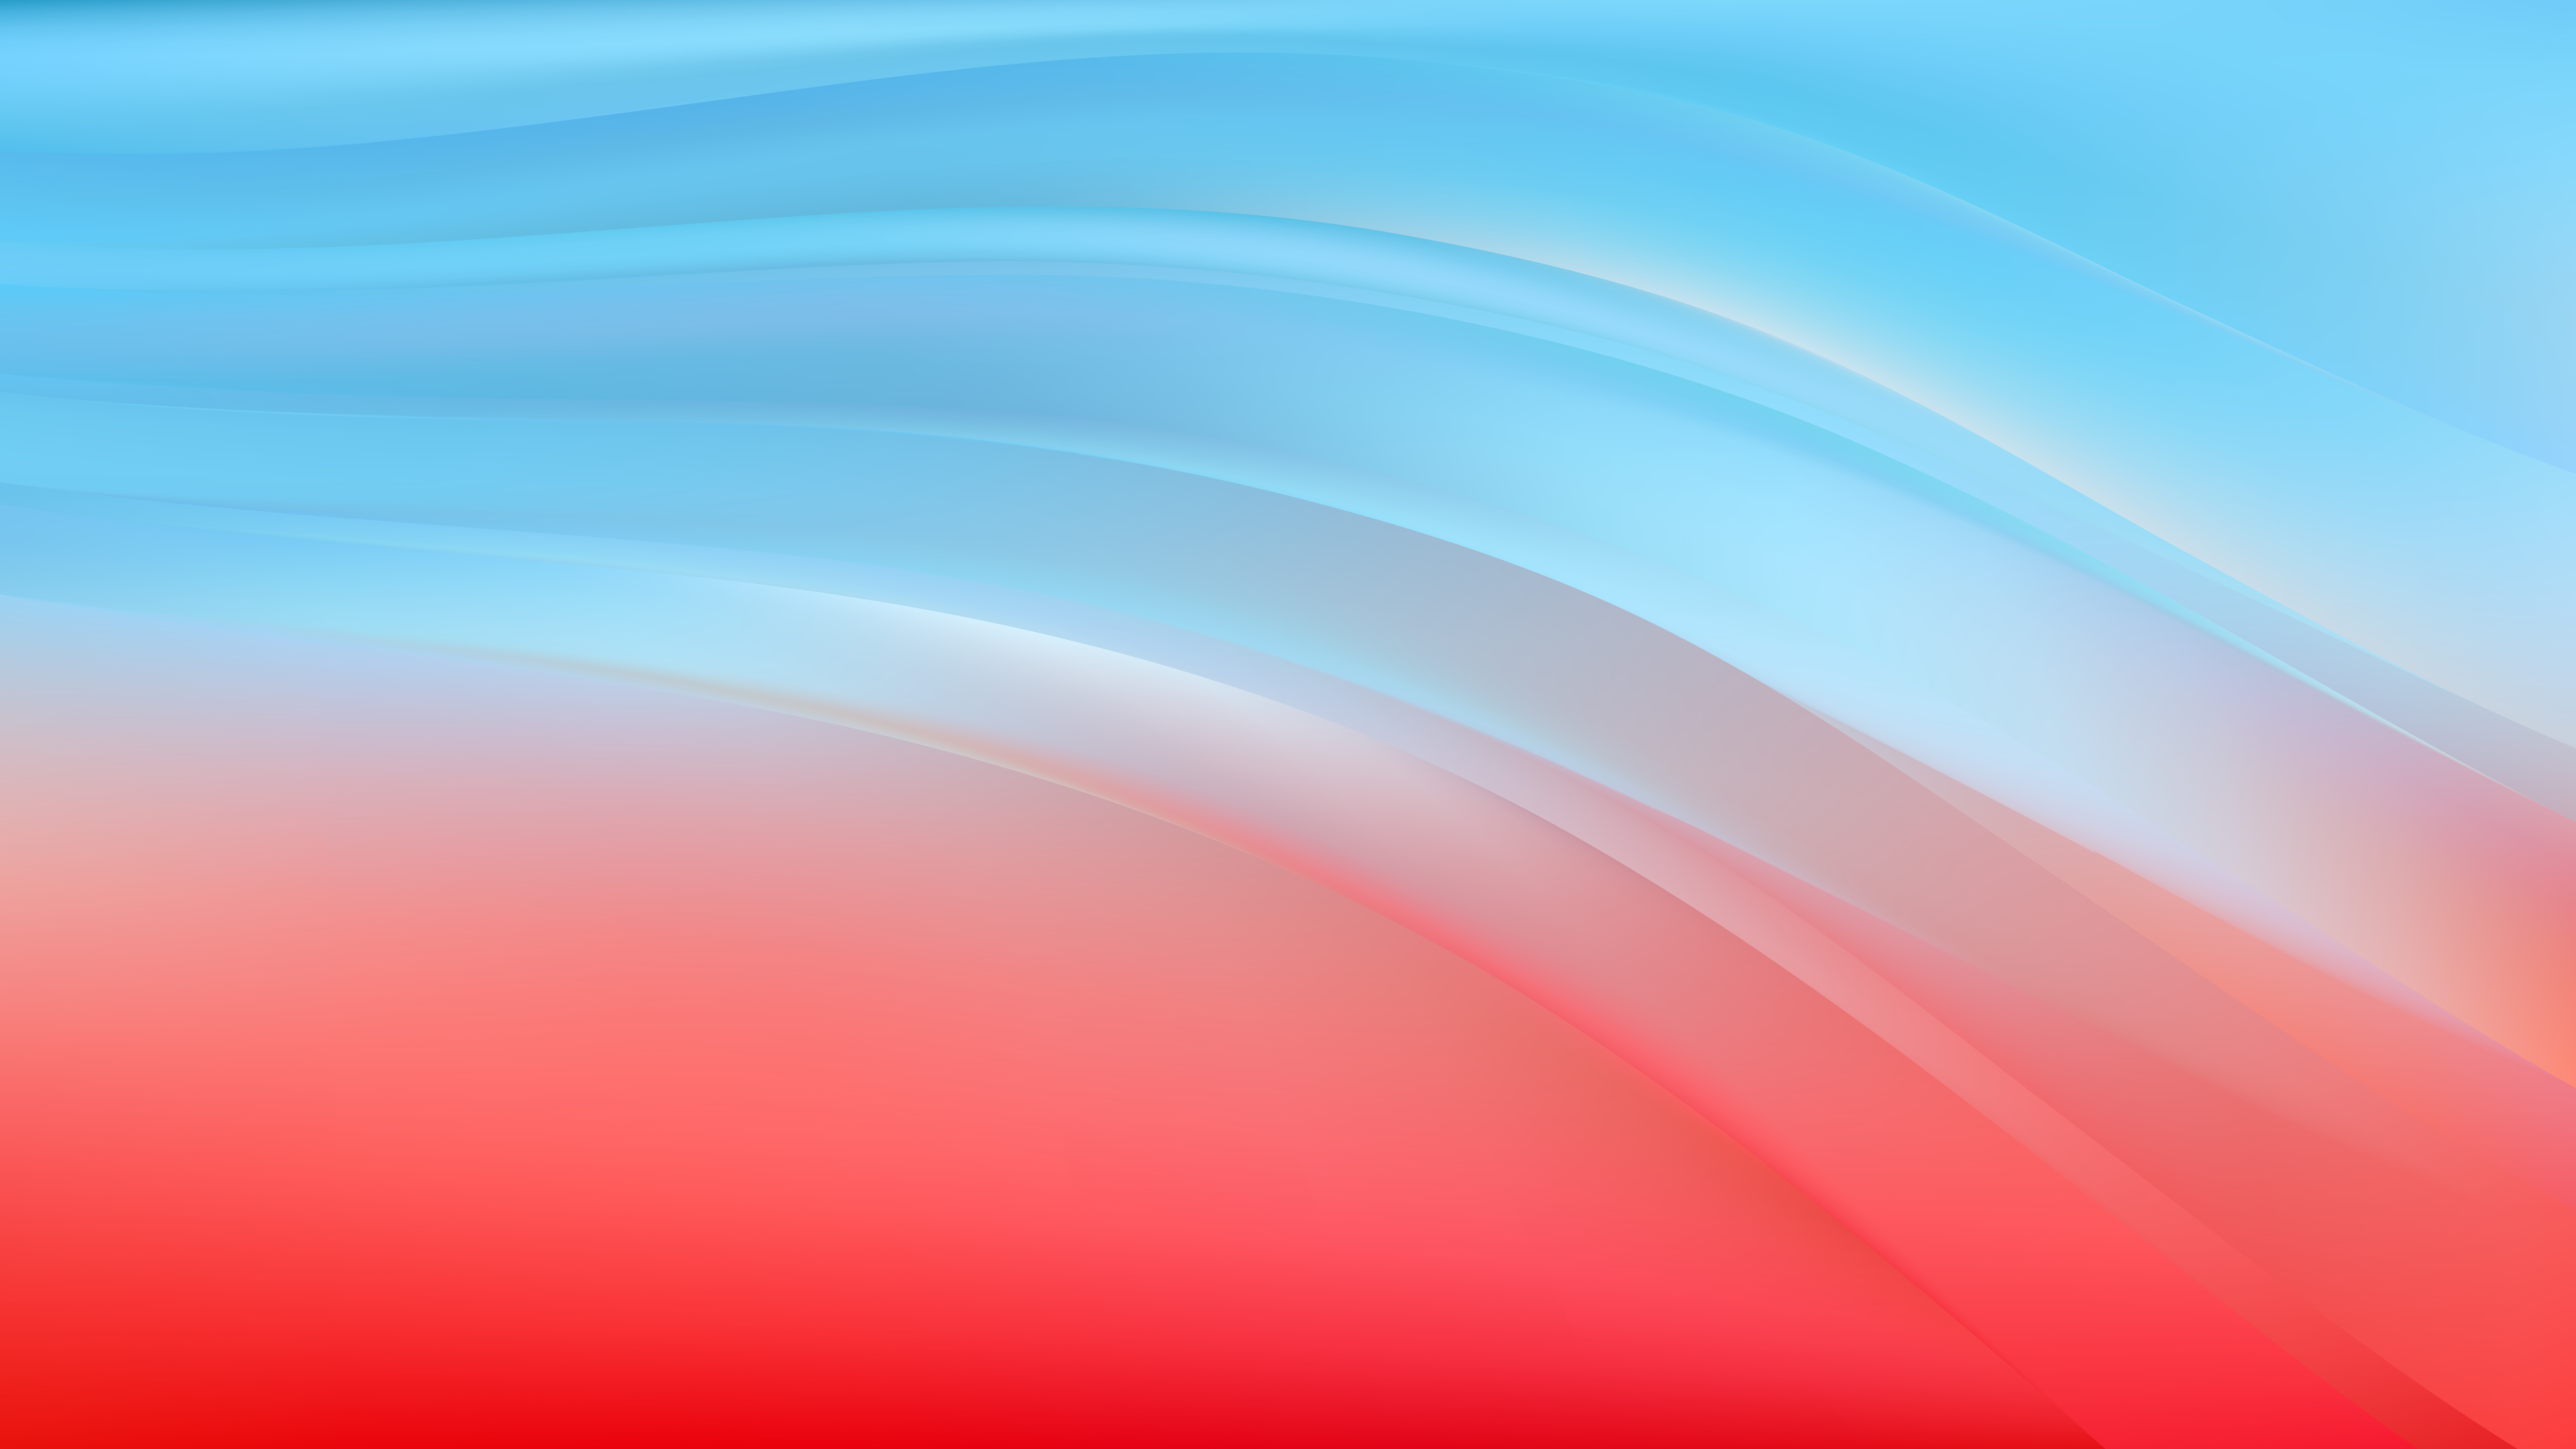 Unduh 850 Background Blue And Red HD Terbaik